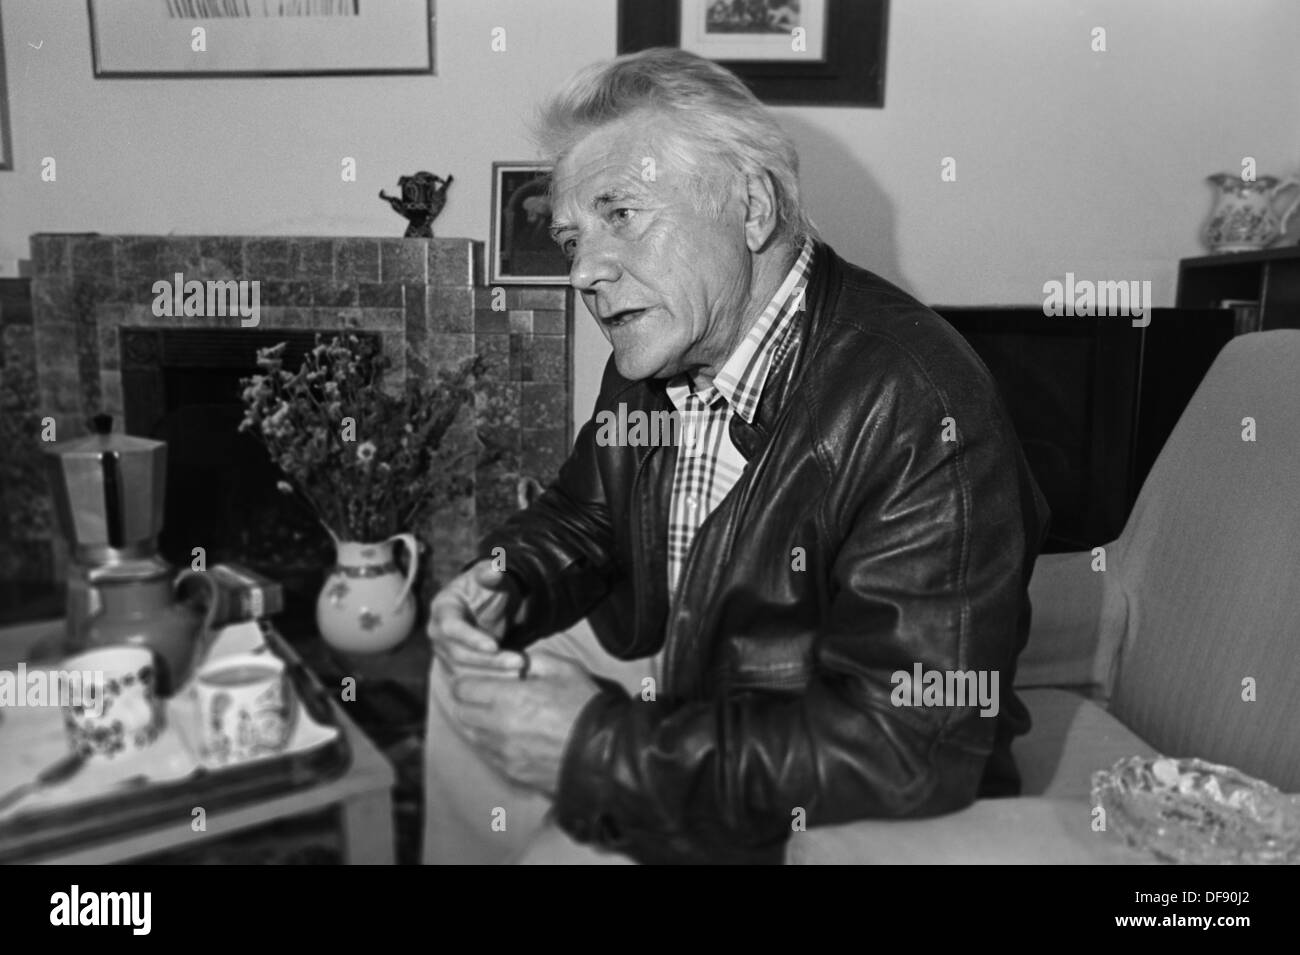 Archive photo: welsh radical marxist historian Gwyn Alf Williams at home in Drefach Felindre, Carmarthenshire, 1991 - Stock Image